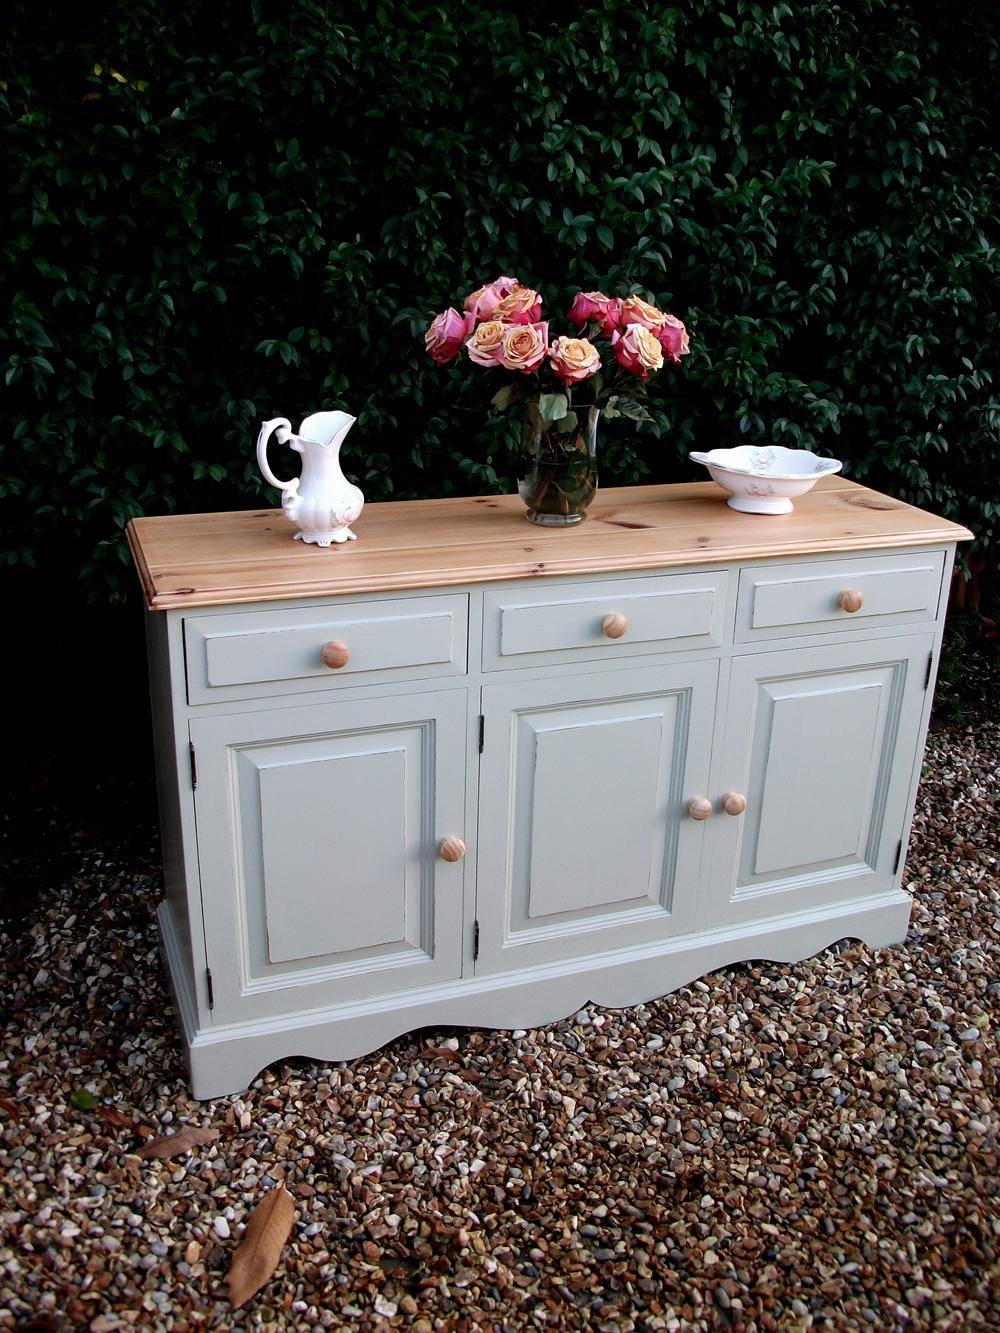 Blues And Hues – Bespoke Furniture Painting Surrey With Shabby Chic Sideboards (View 3 of 15)